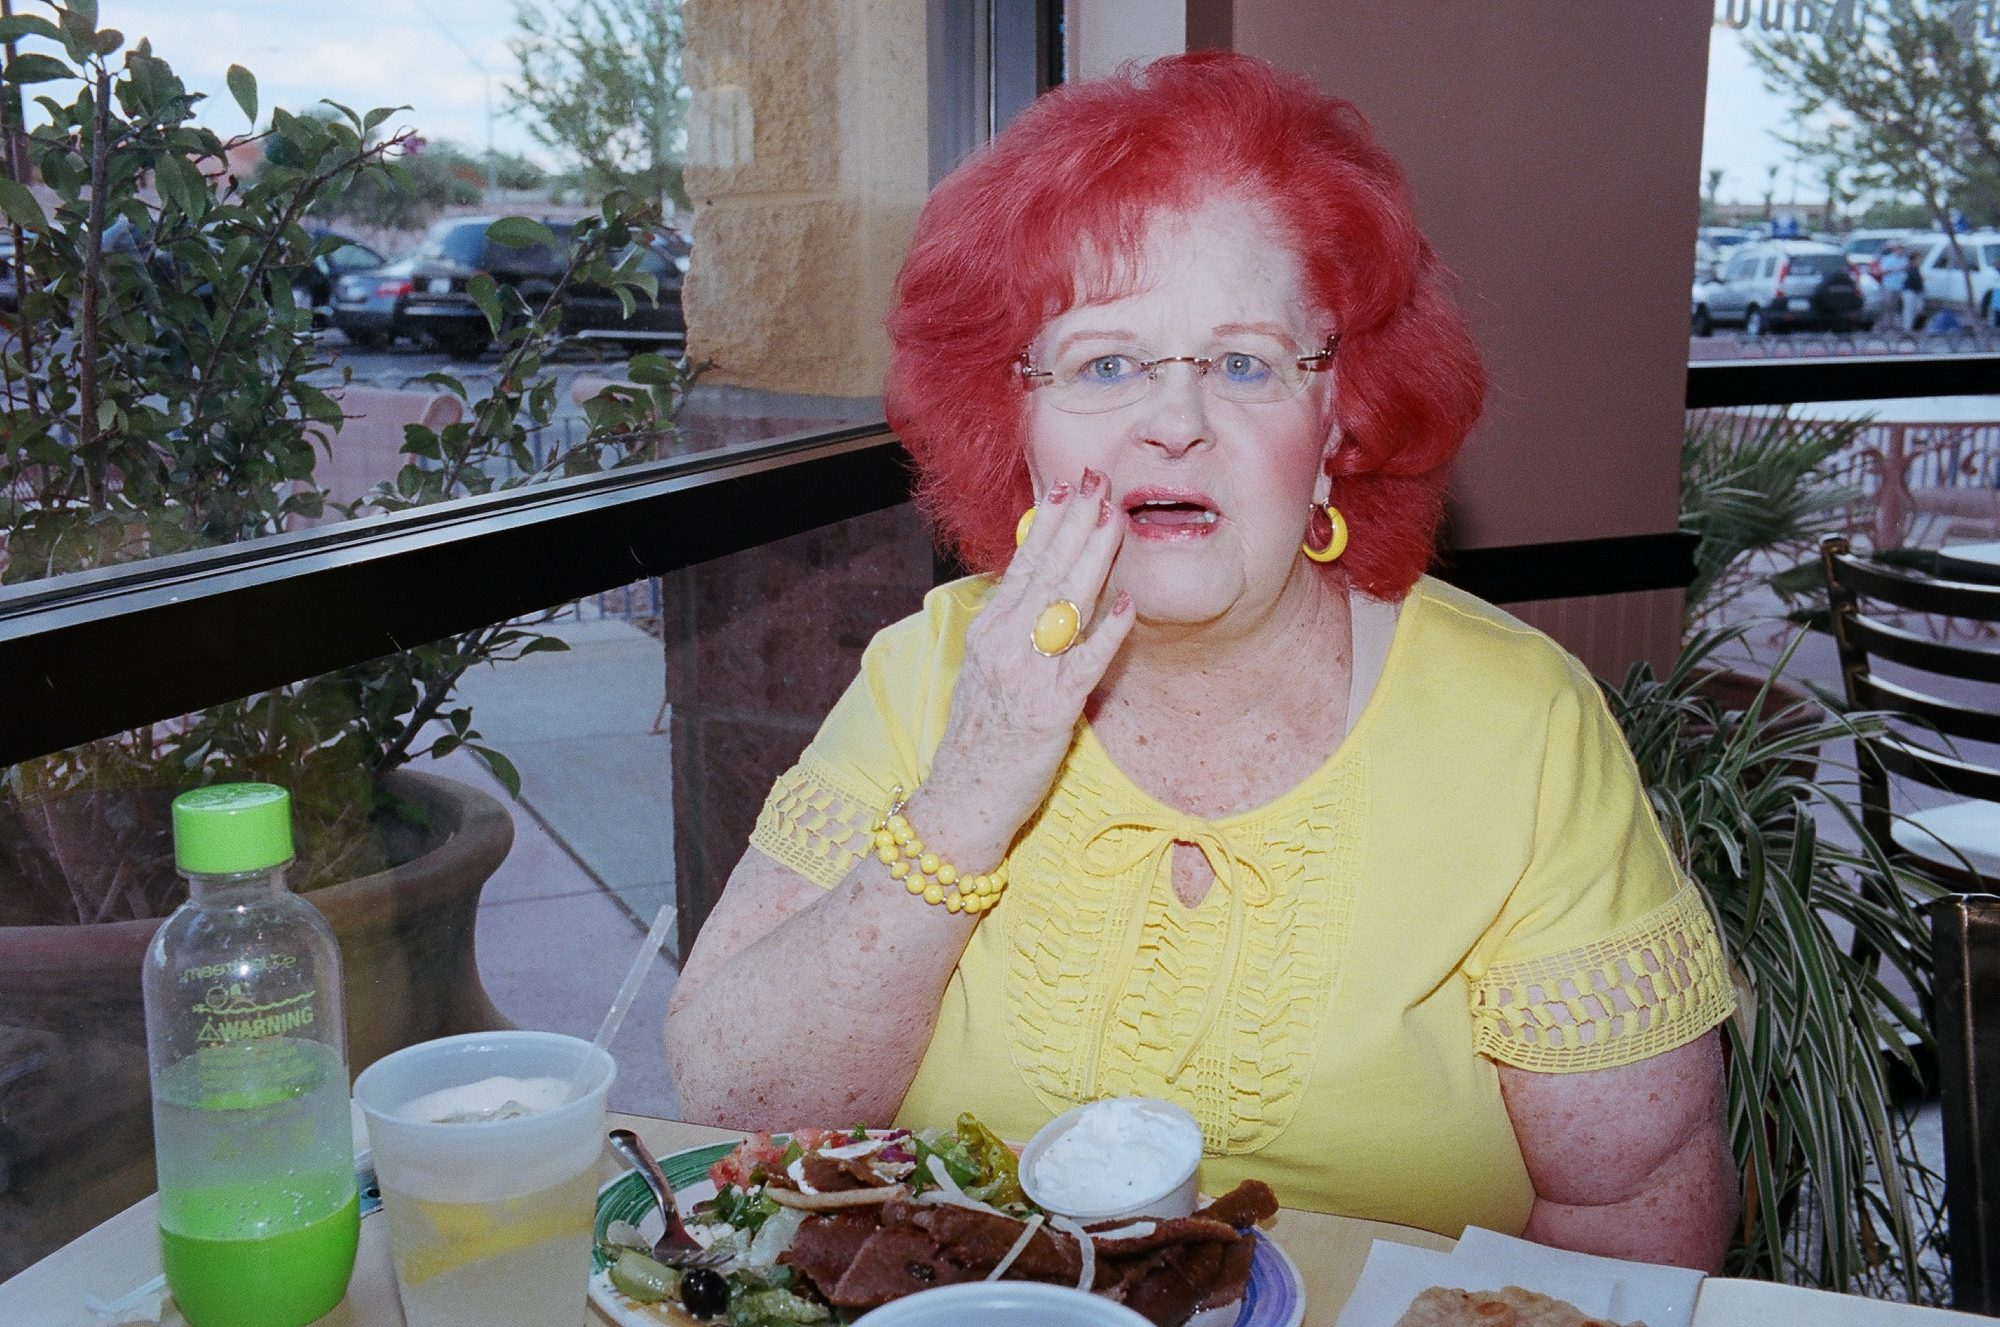 Tucson, 2014 (shot on a film Leica and 35mm lens with flash)